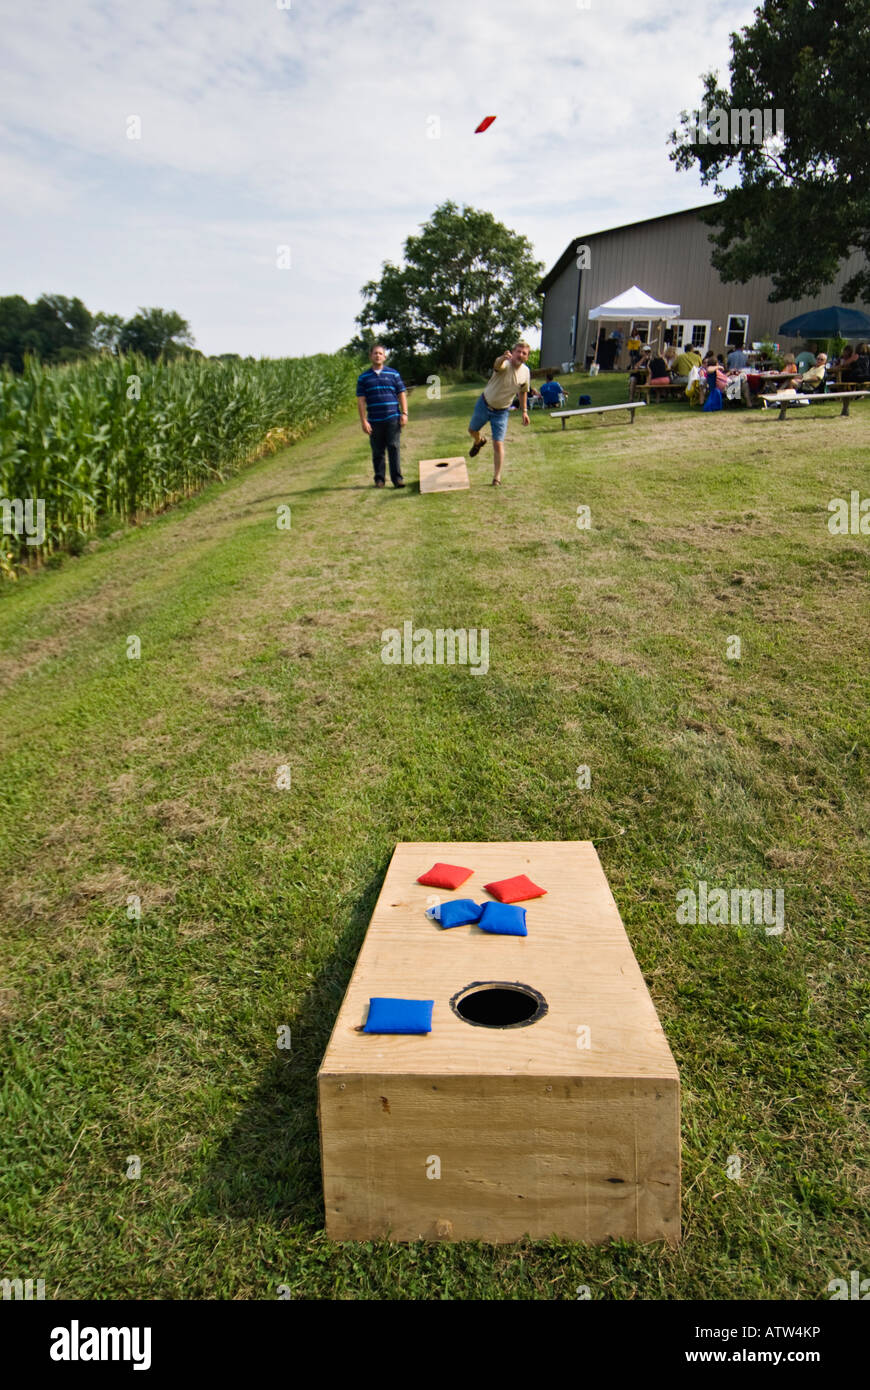 Two Men Playing the Game of Cornhole beside Field of Corn Harrison County Indiana - Stock Image